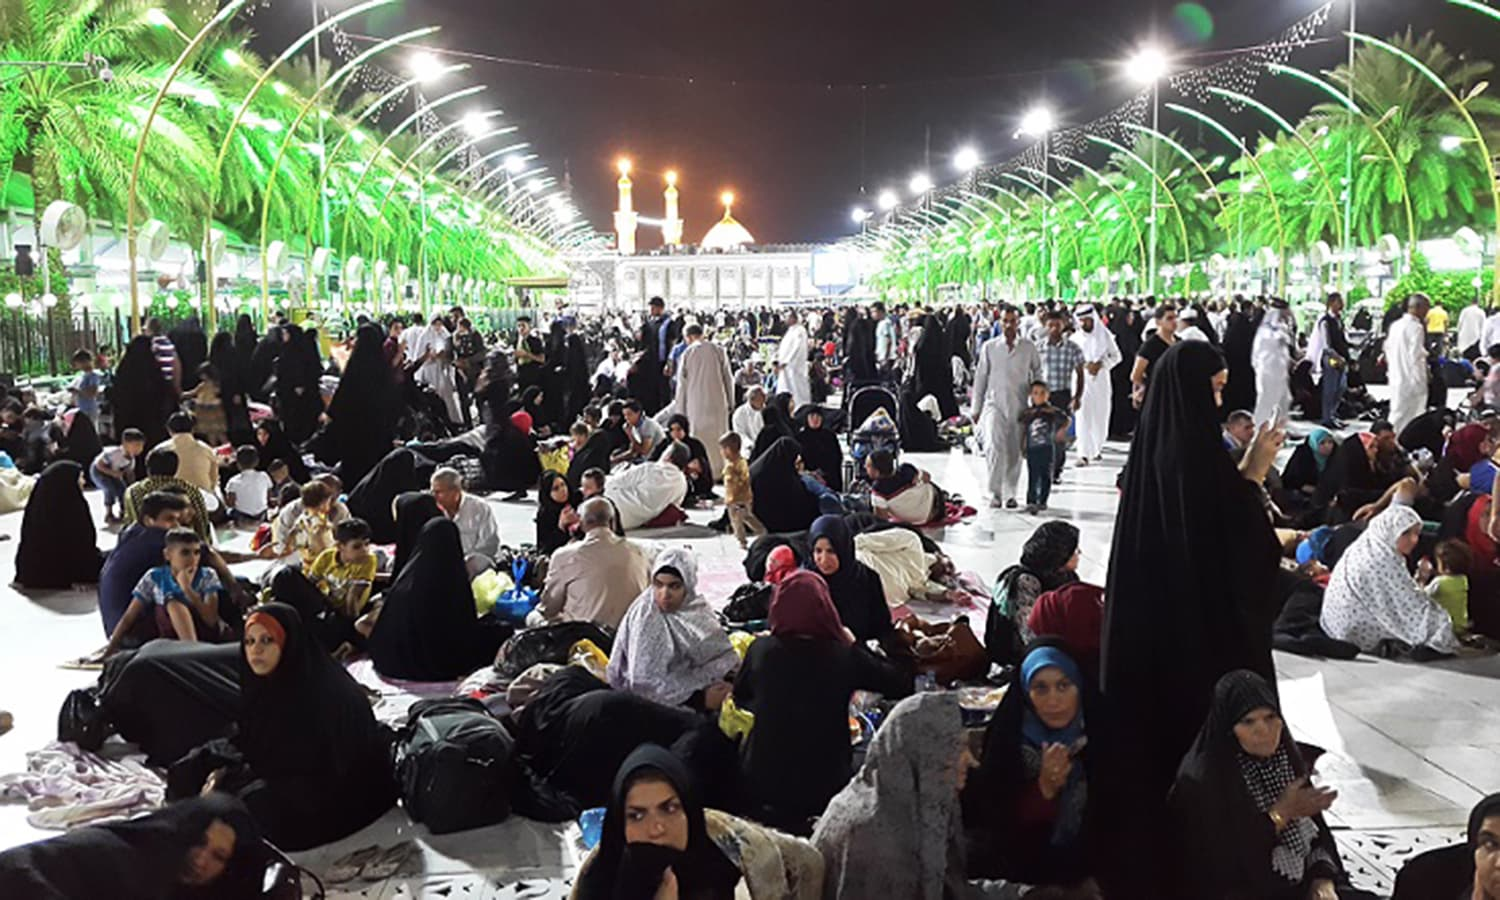 The vast courtyard between the shrines of Imam Hussain and Hazrat Abbas Ali provides space for prayer, relaxation and gathering.